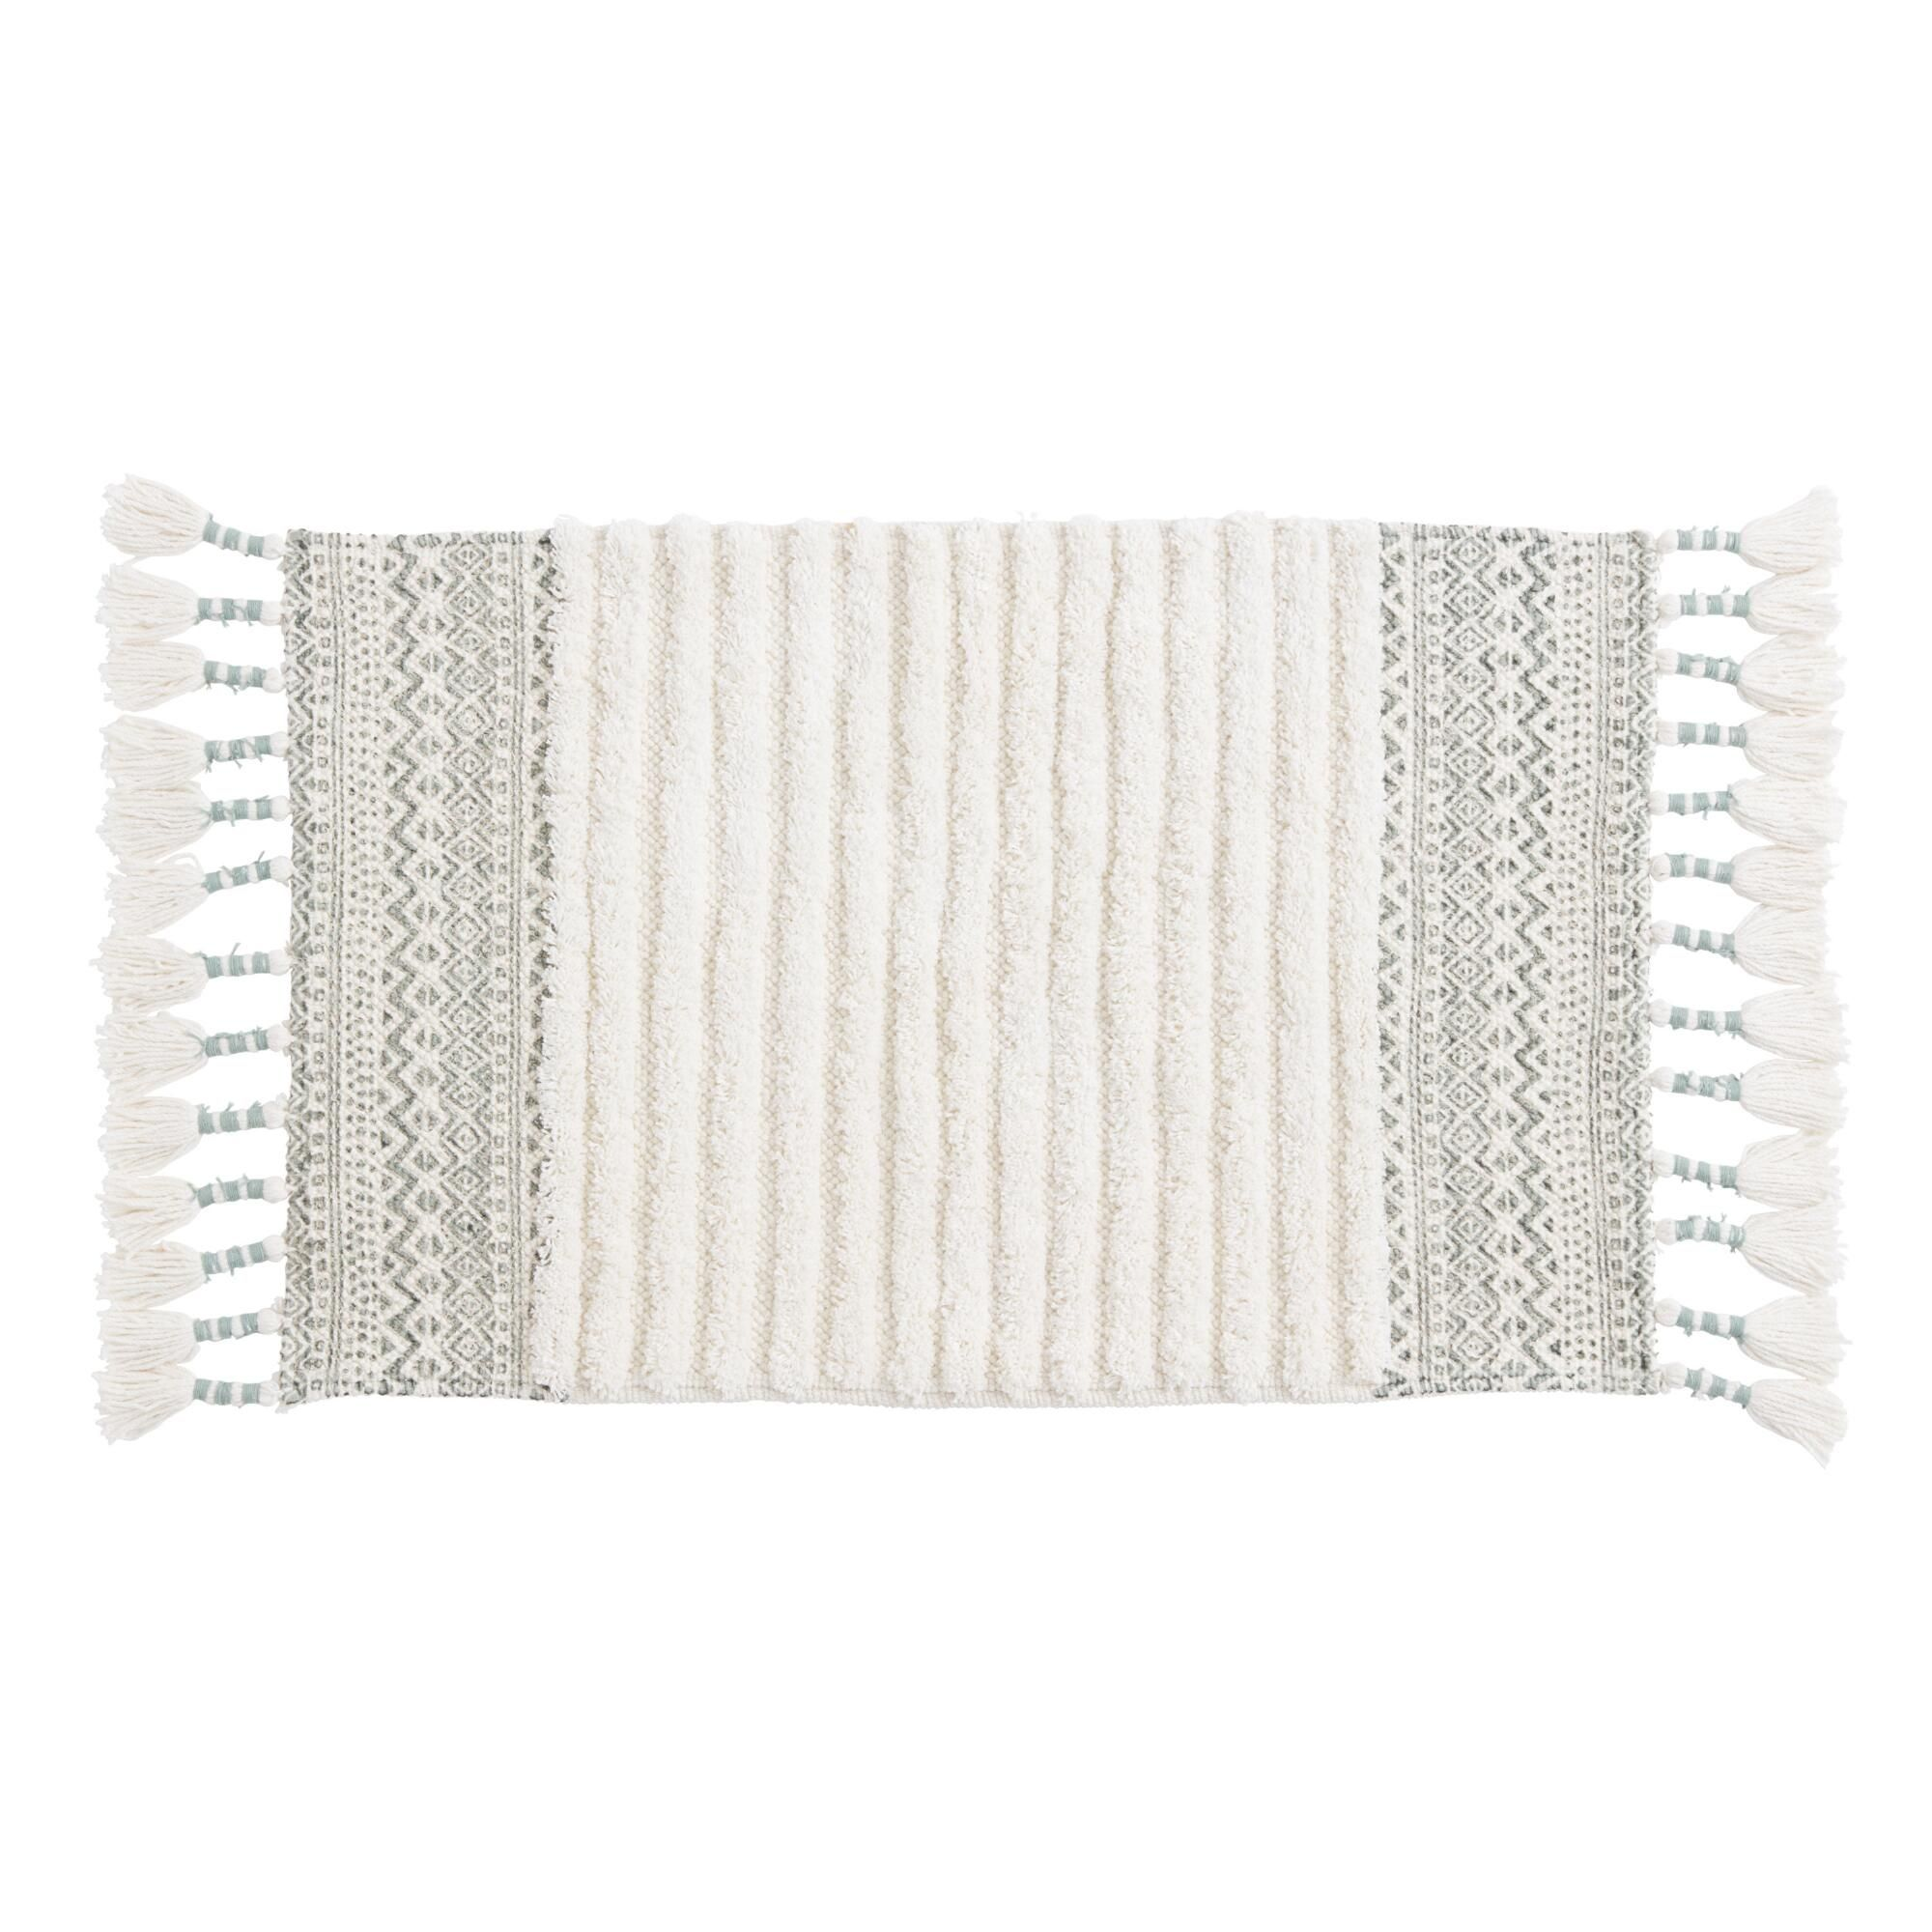 Jadeite and Ivory Geometric Tufted Stripe Bath Mat by World Market Jadeite and Ivory Geometric Tufted Stripe Bath Mat by World Market